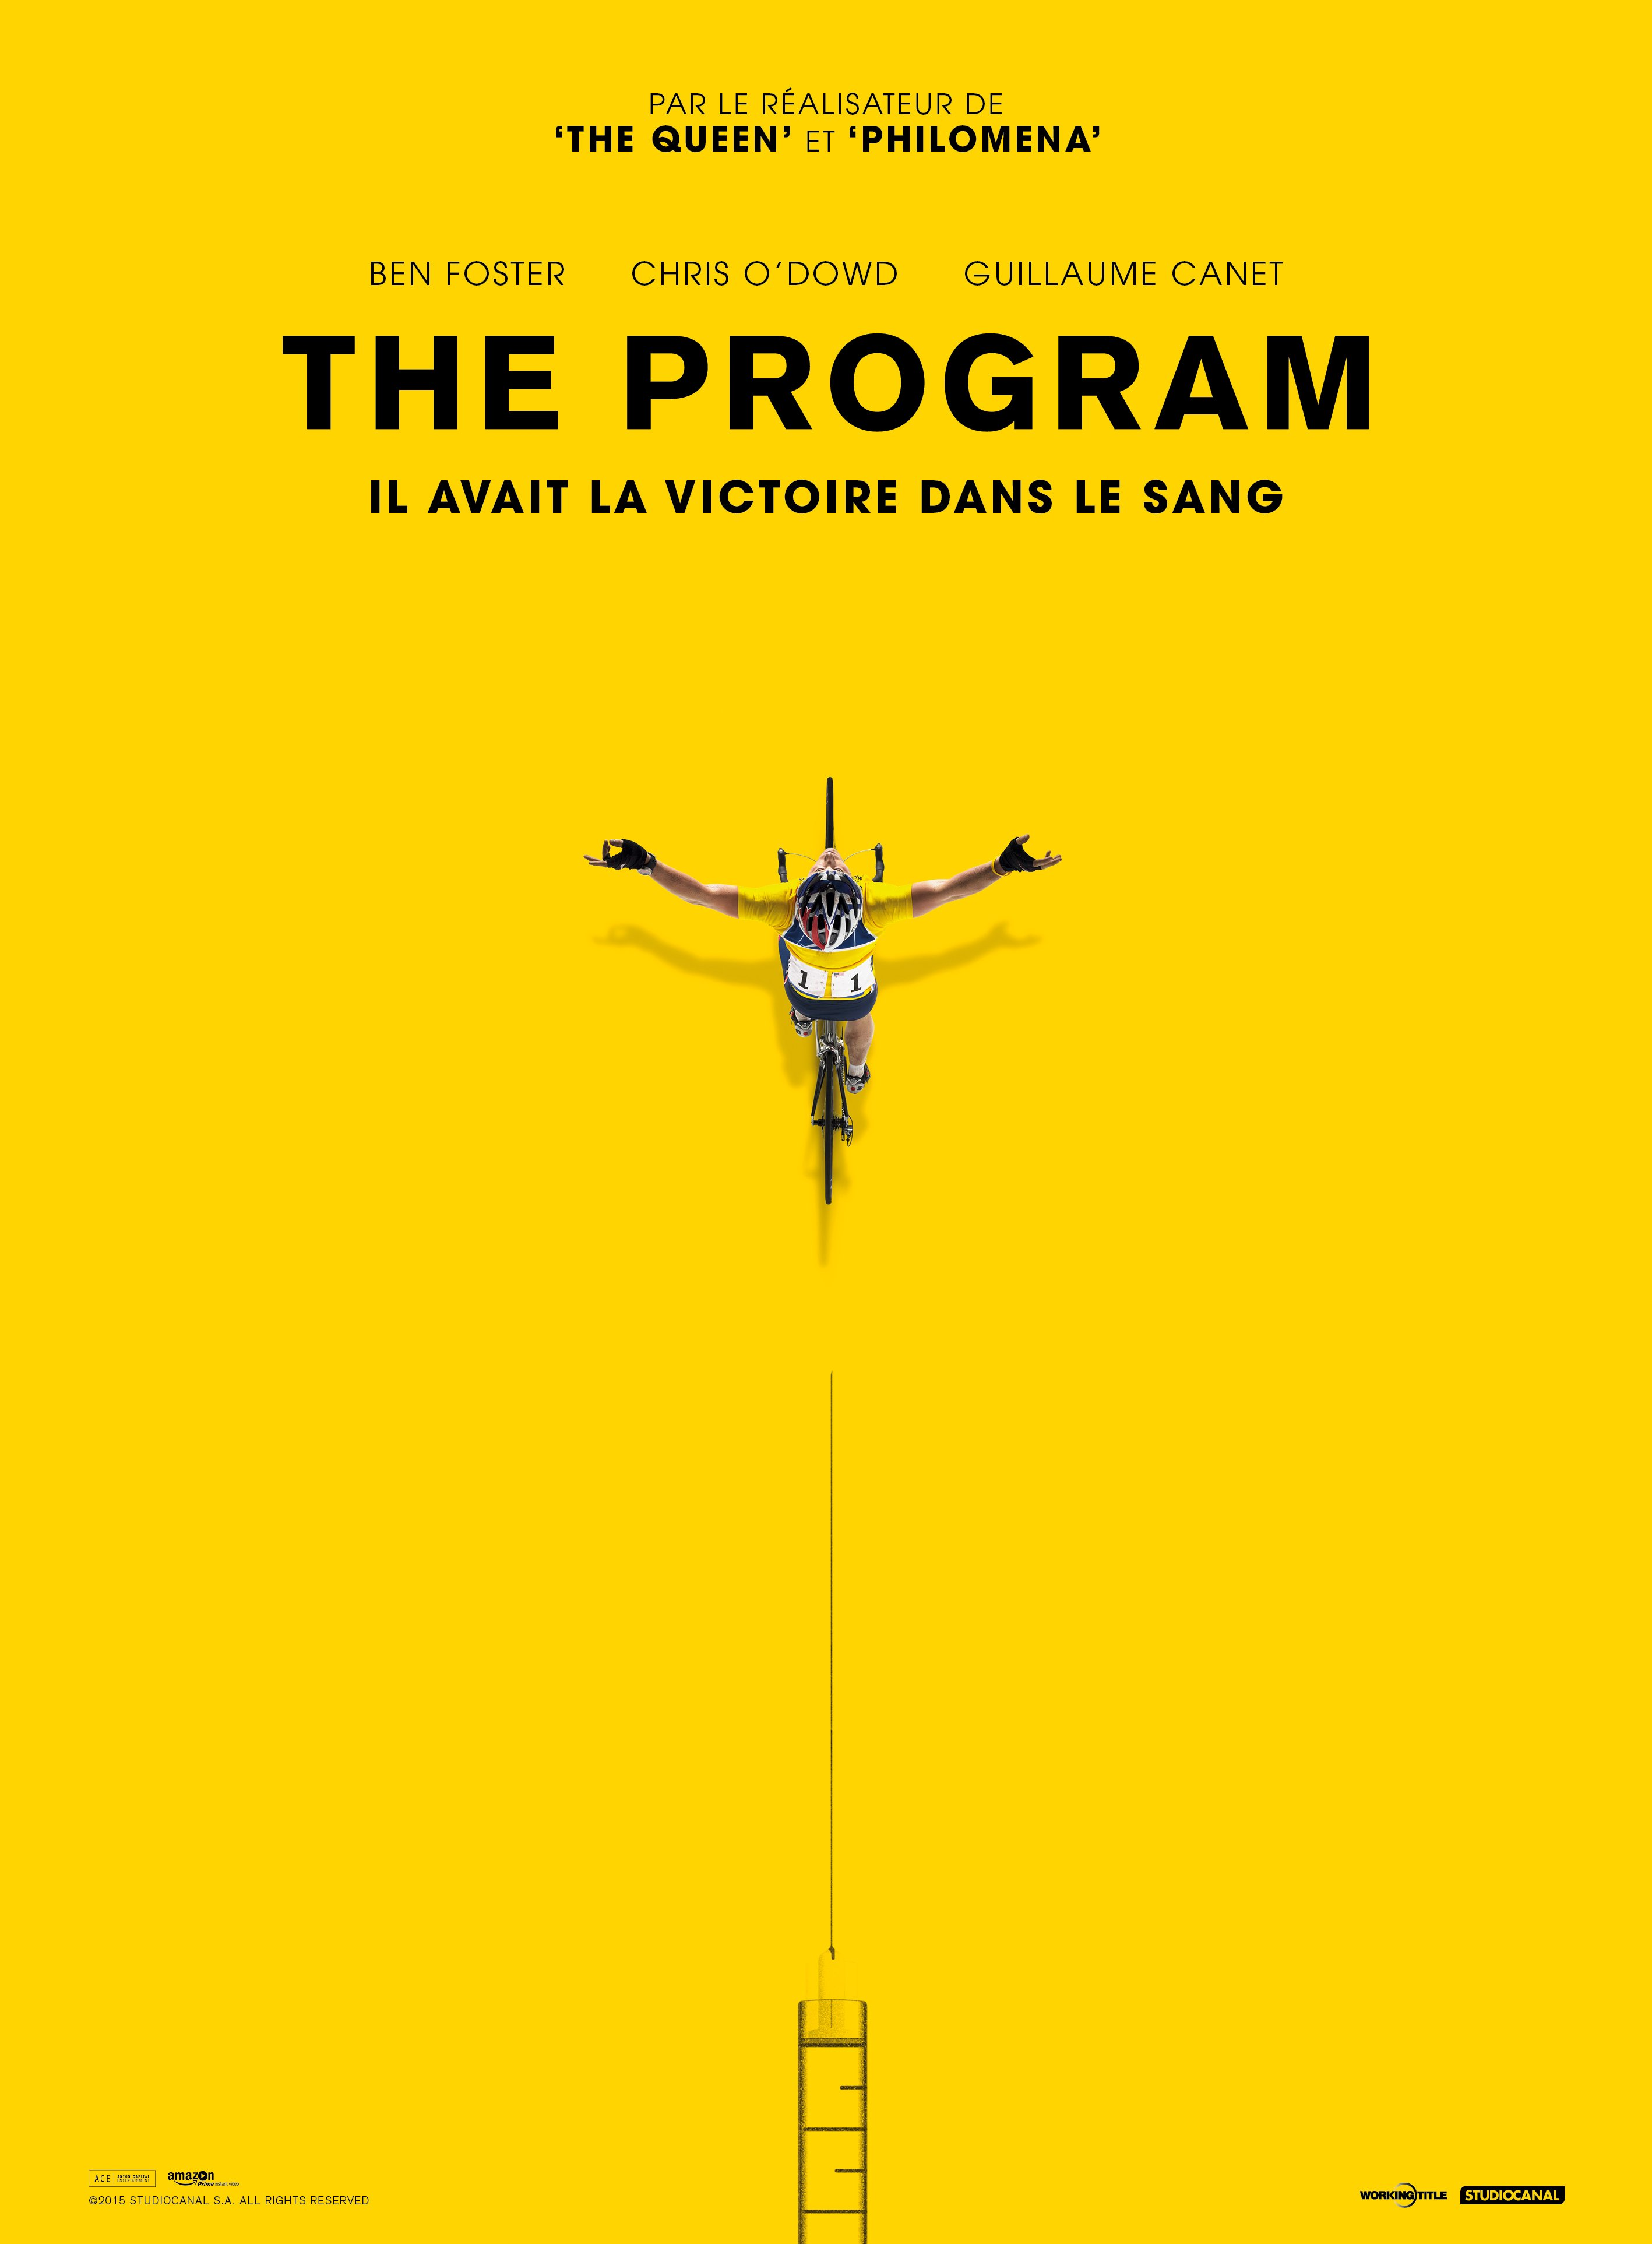 Affiche du film The Program réalisé par Stephen Frears